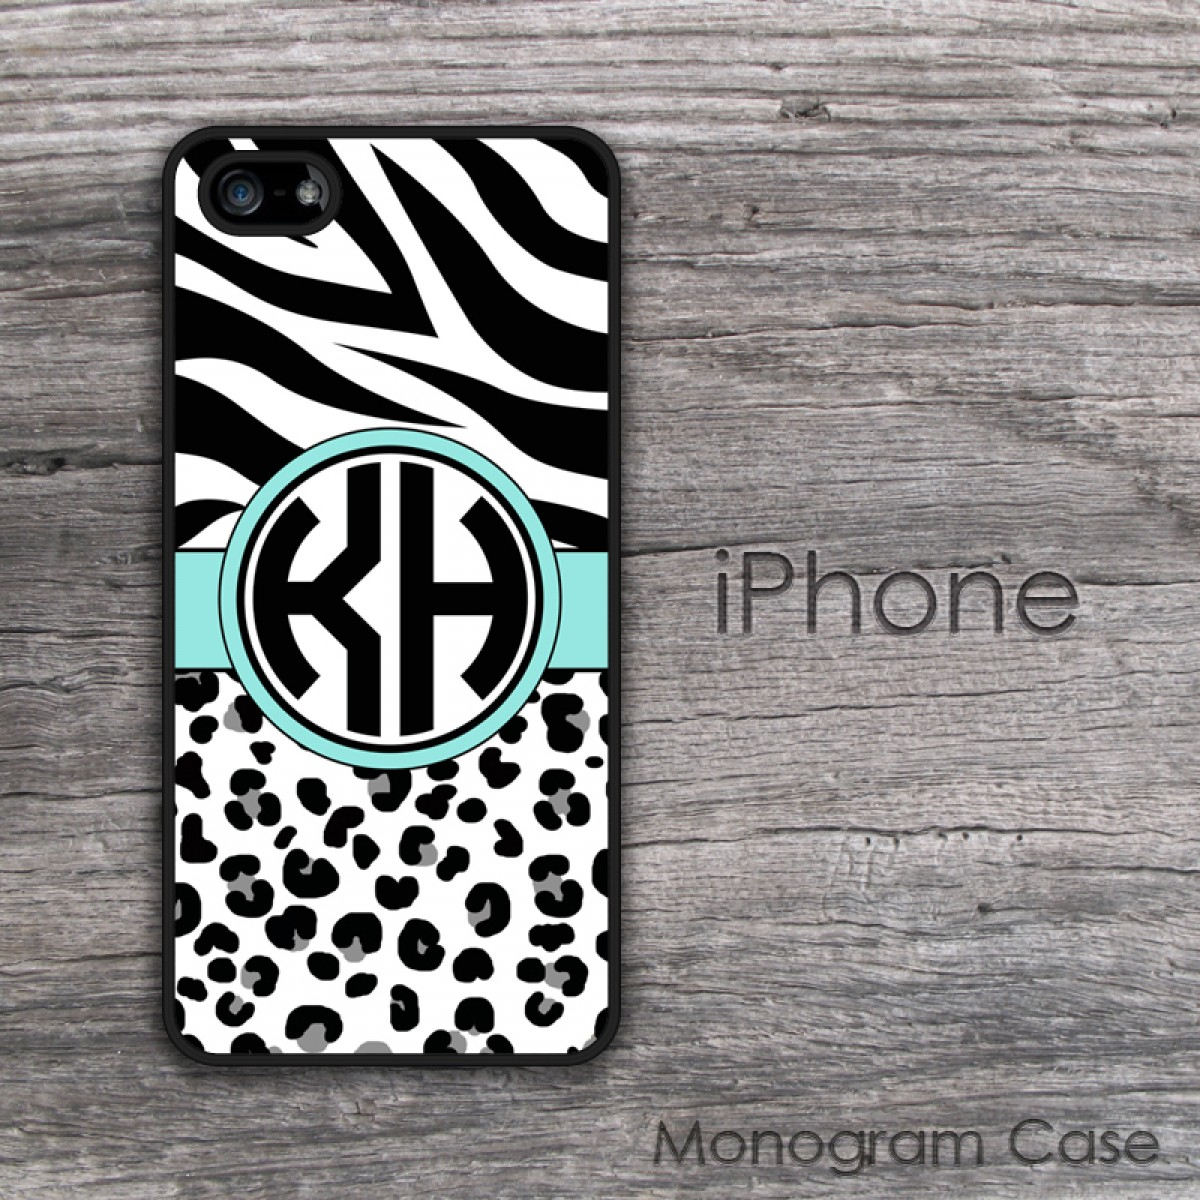 Image of: Printable Monogramcasecom Animal Print Aqua Ribbon Monogrammed Iphone Case Monogramcasecom